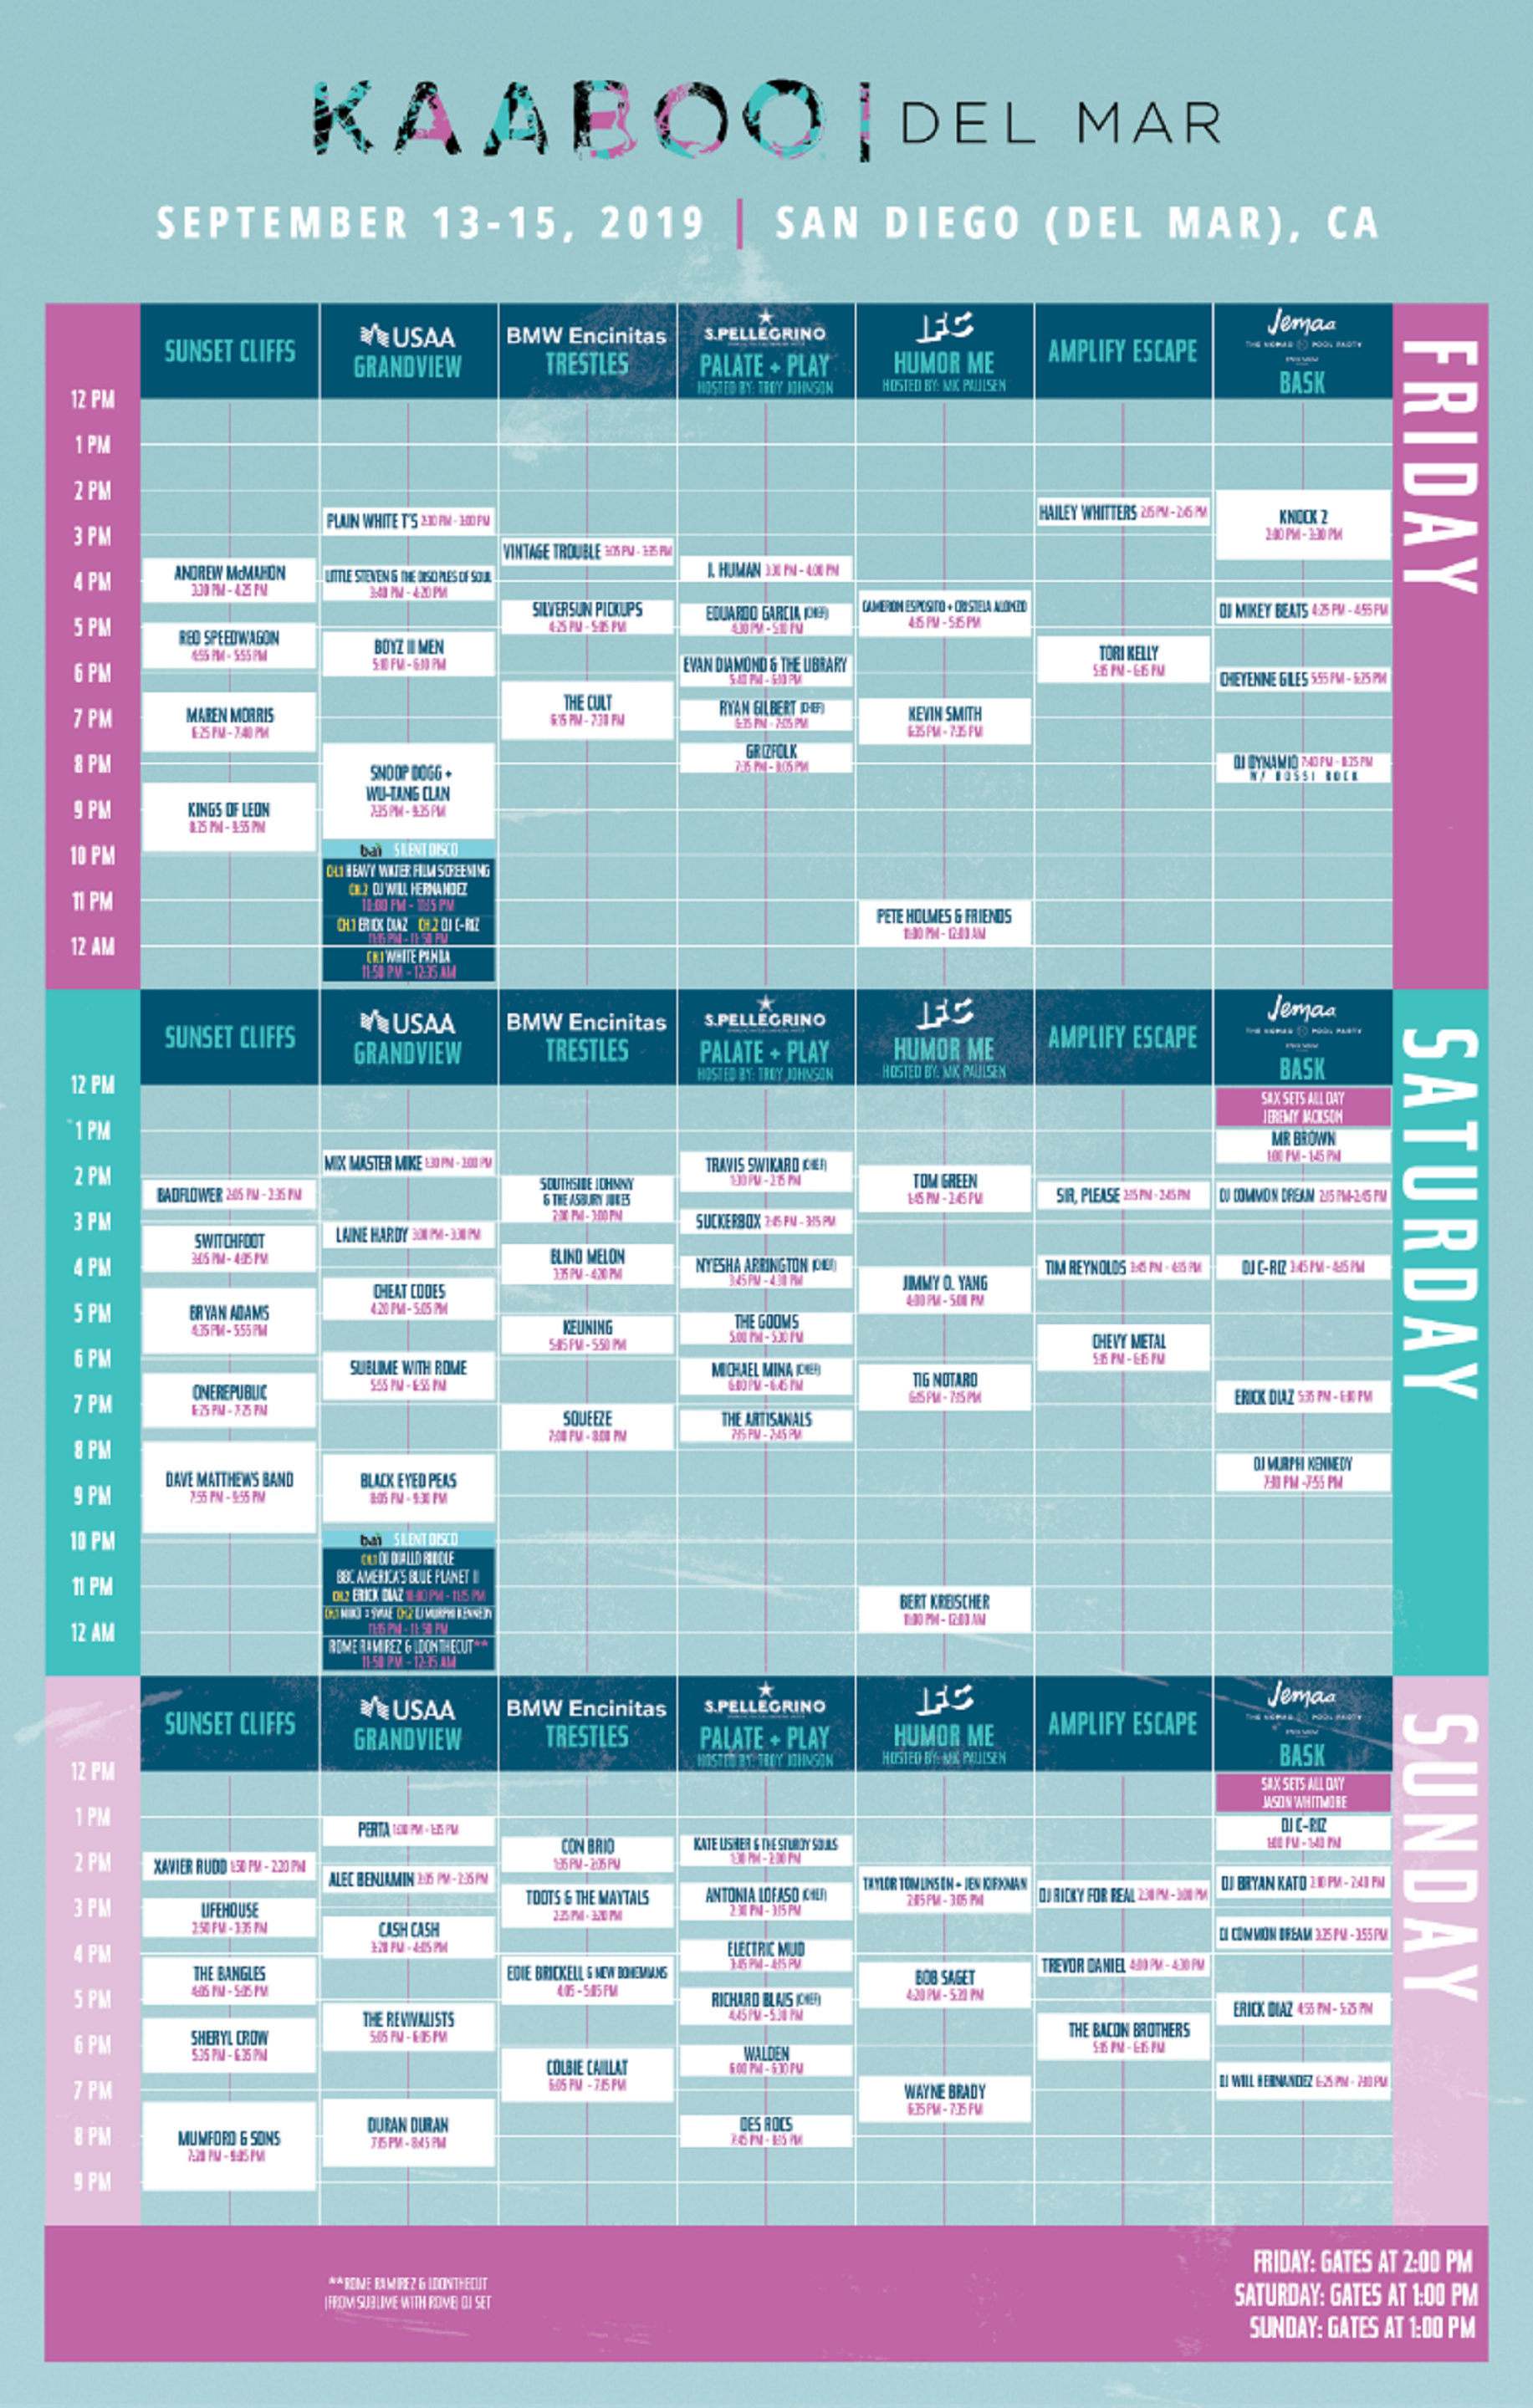 KAABOO Del Mar 2019 Daily Schedule Announced